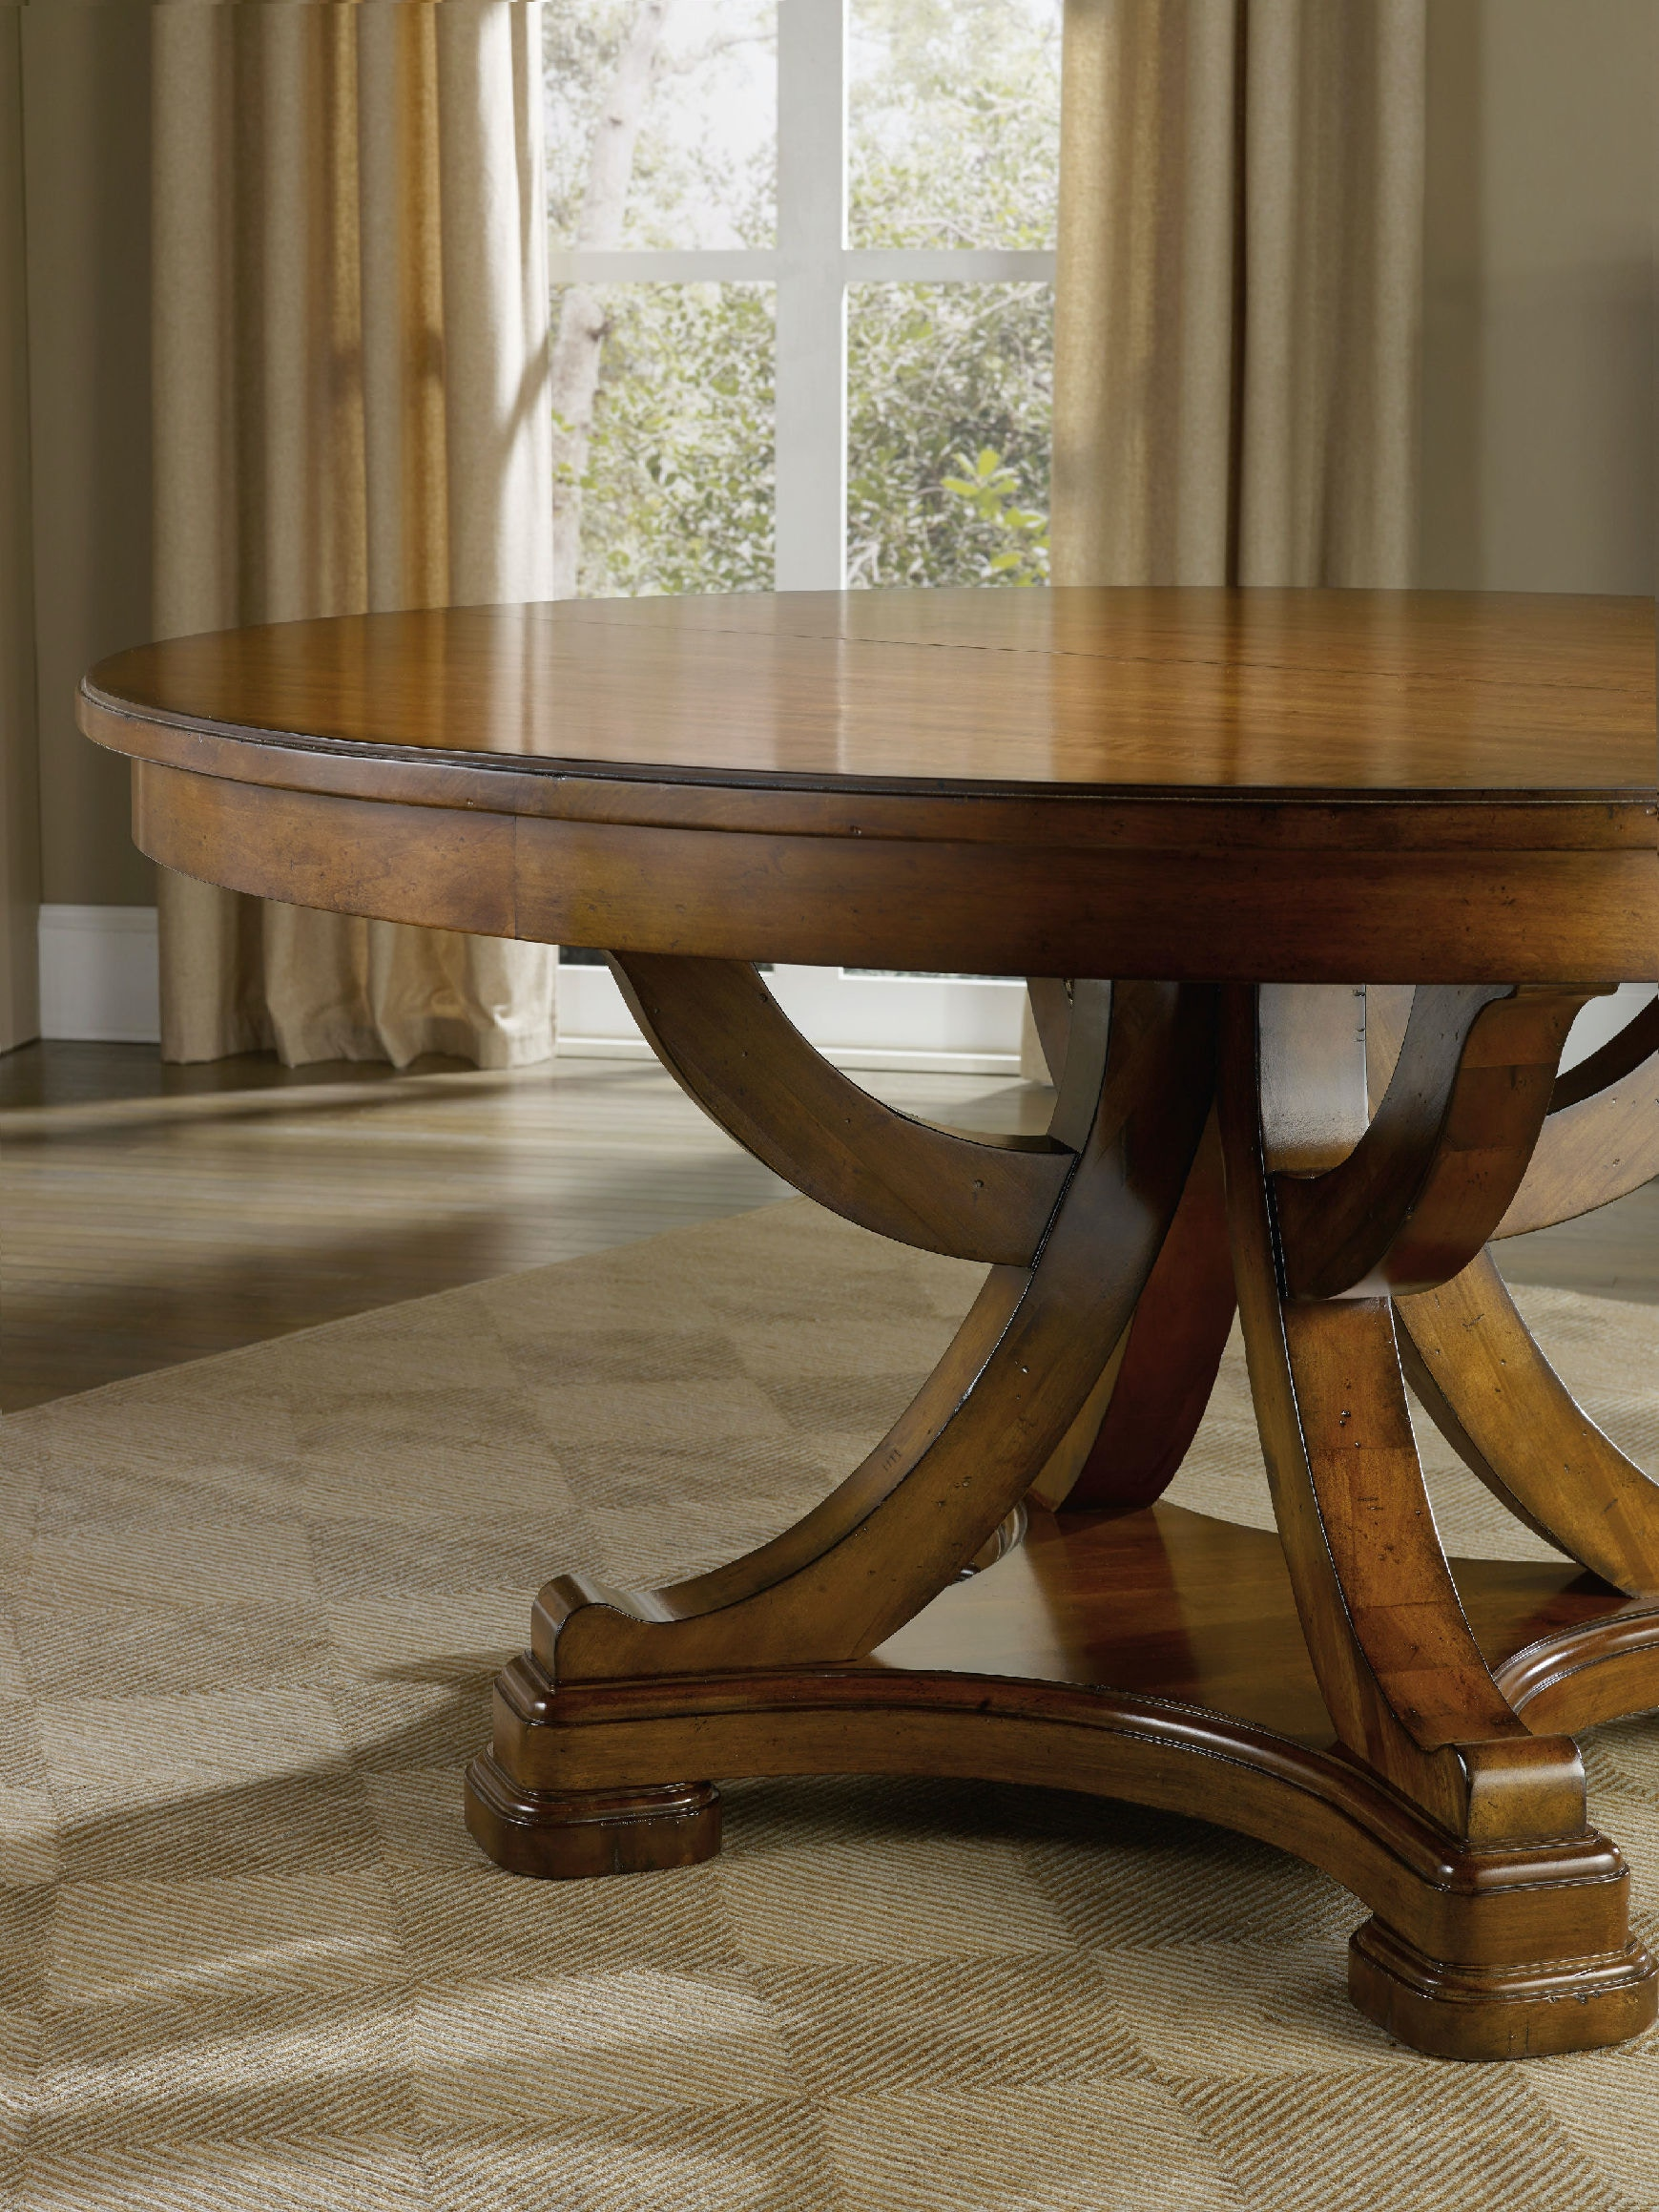 Hooker Furniture Tynecastle Round Pedestal Dining Table With One 18 Leaf 5323 75206